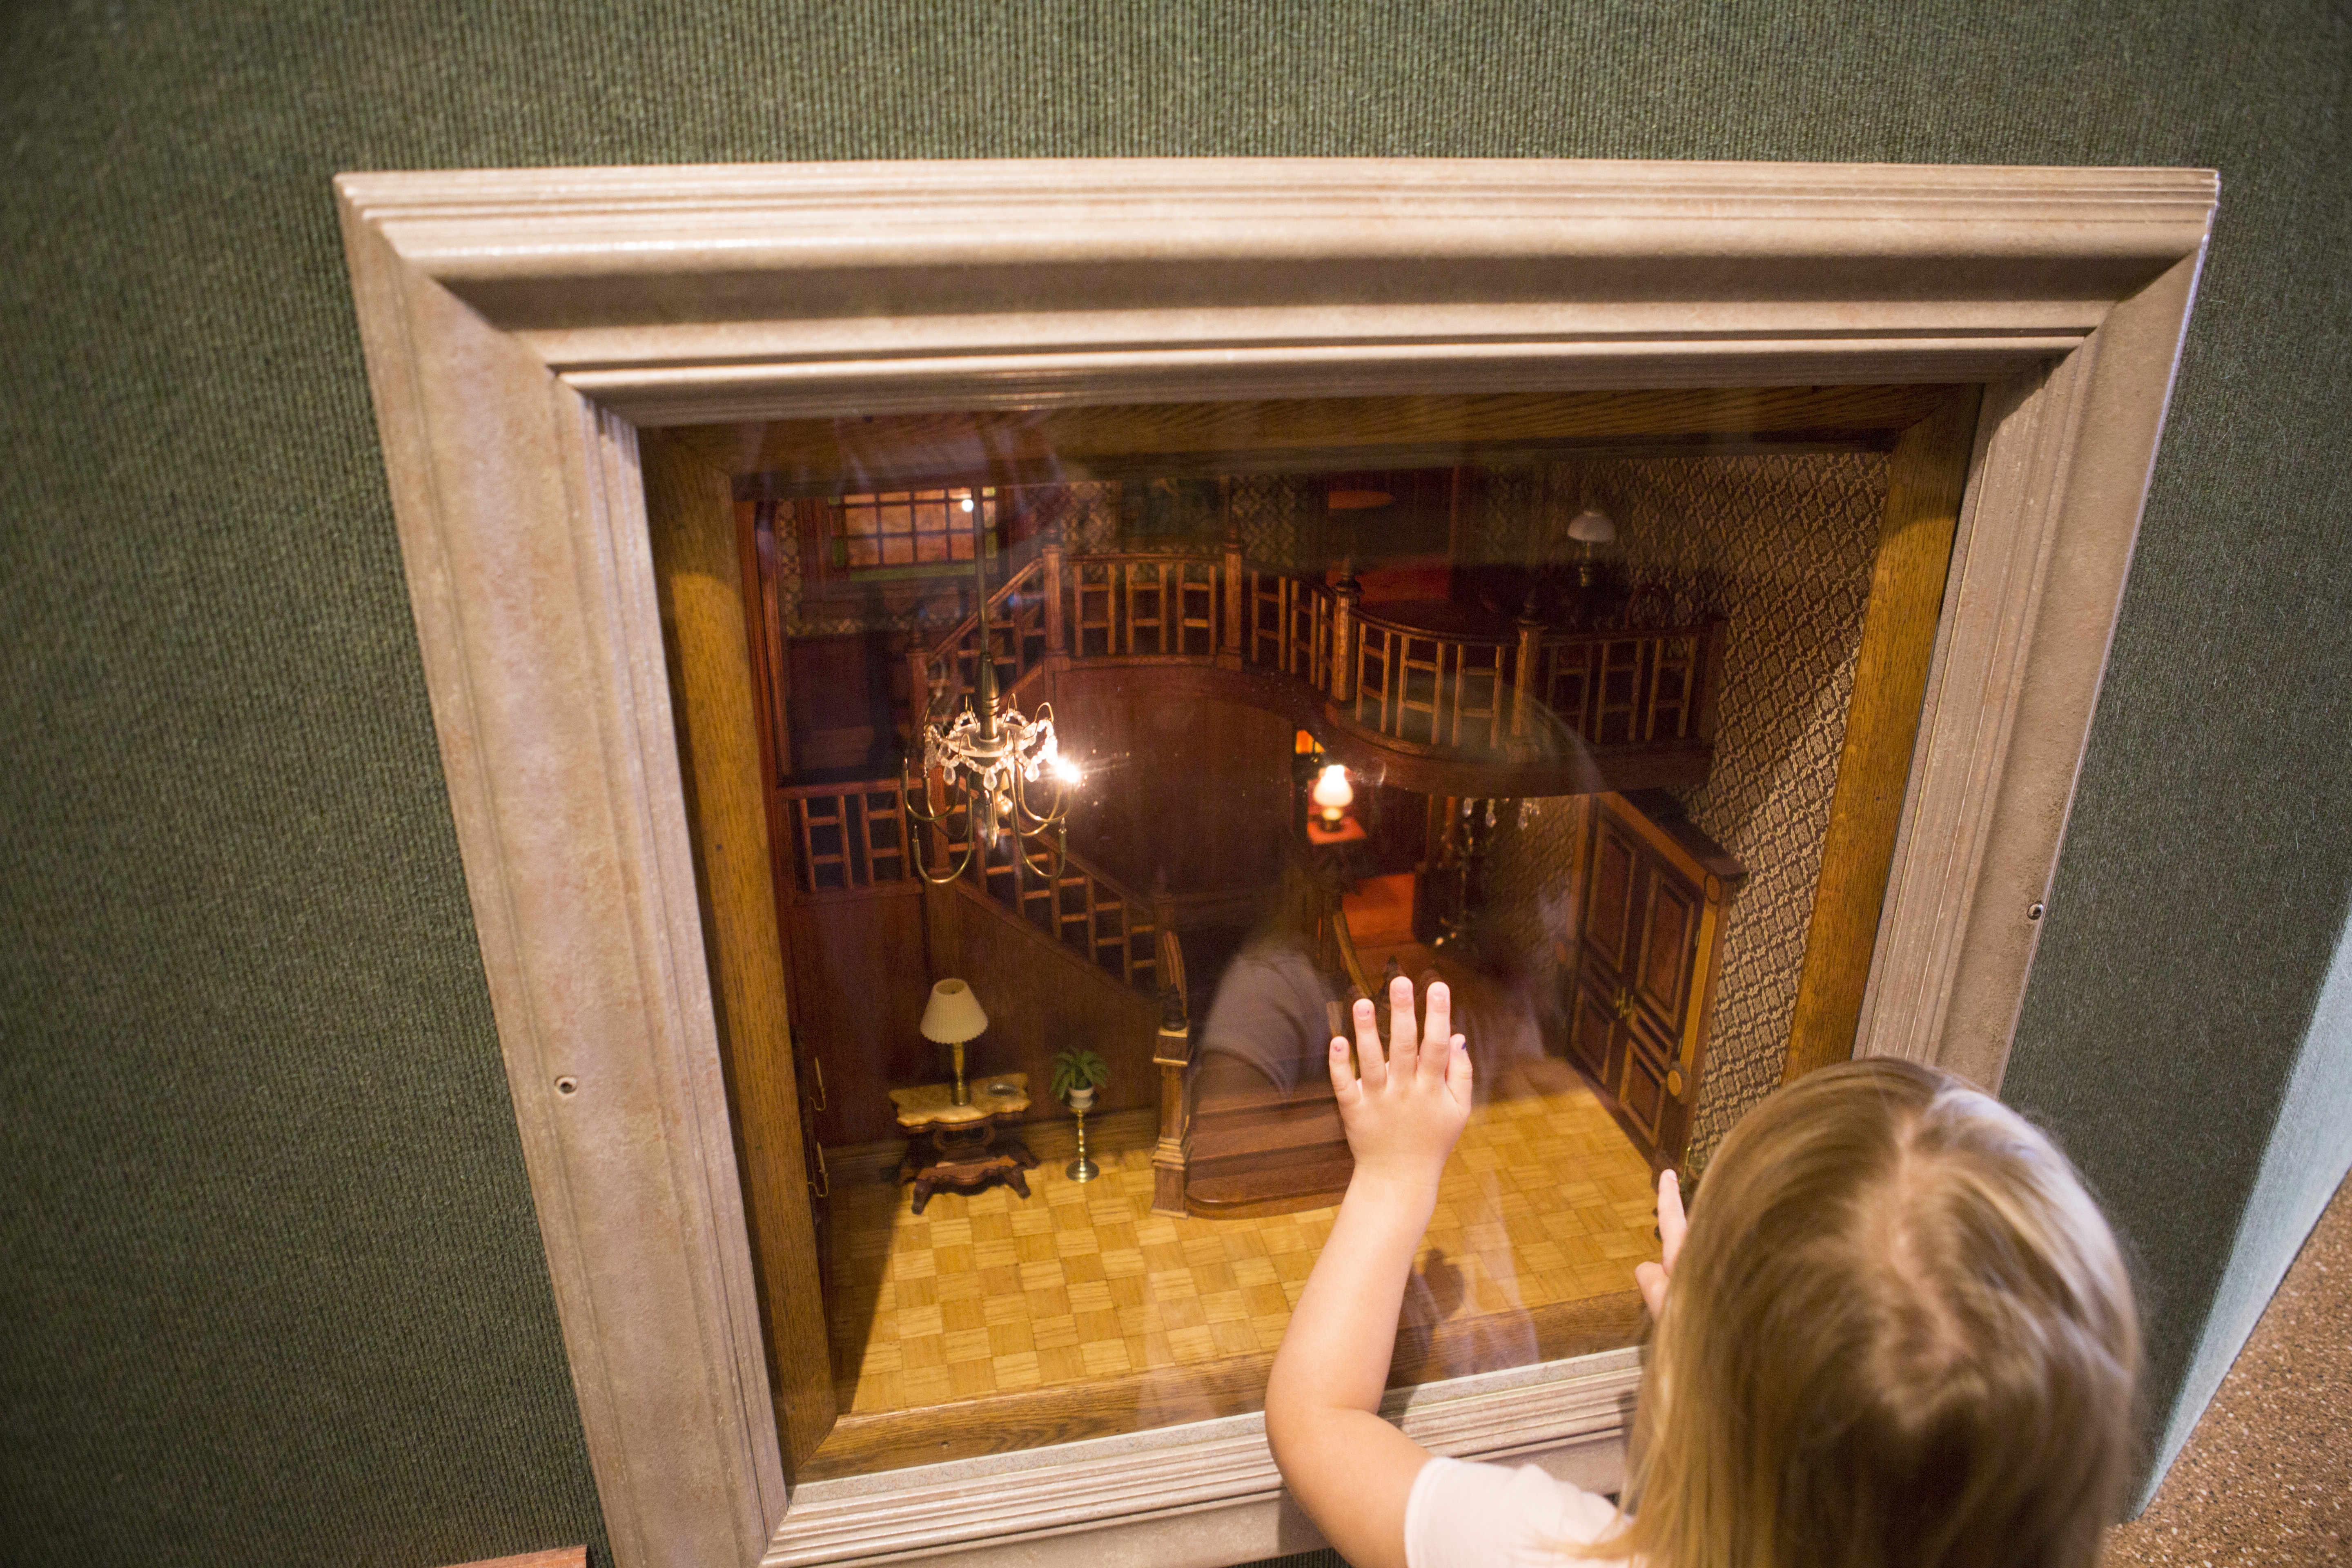 Indianpolis_Childrens_Museum-001_4